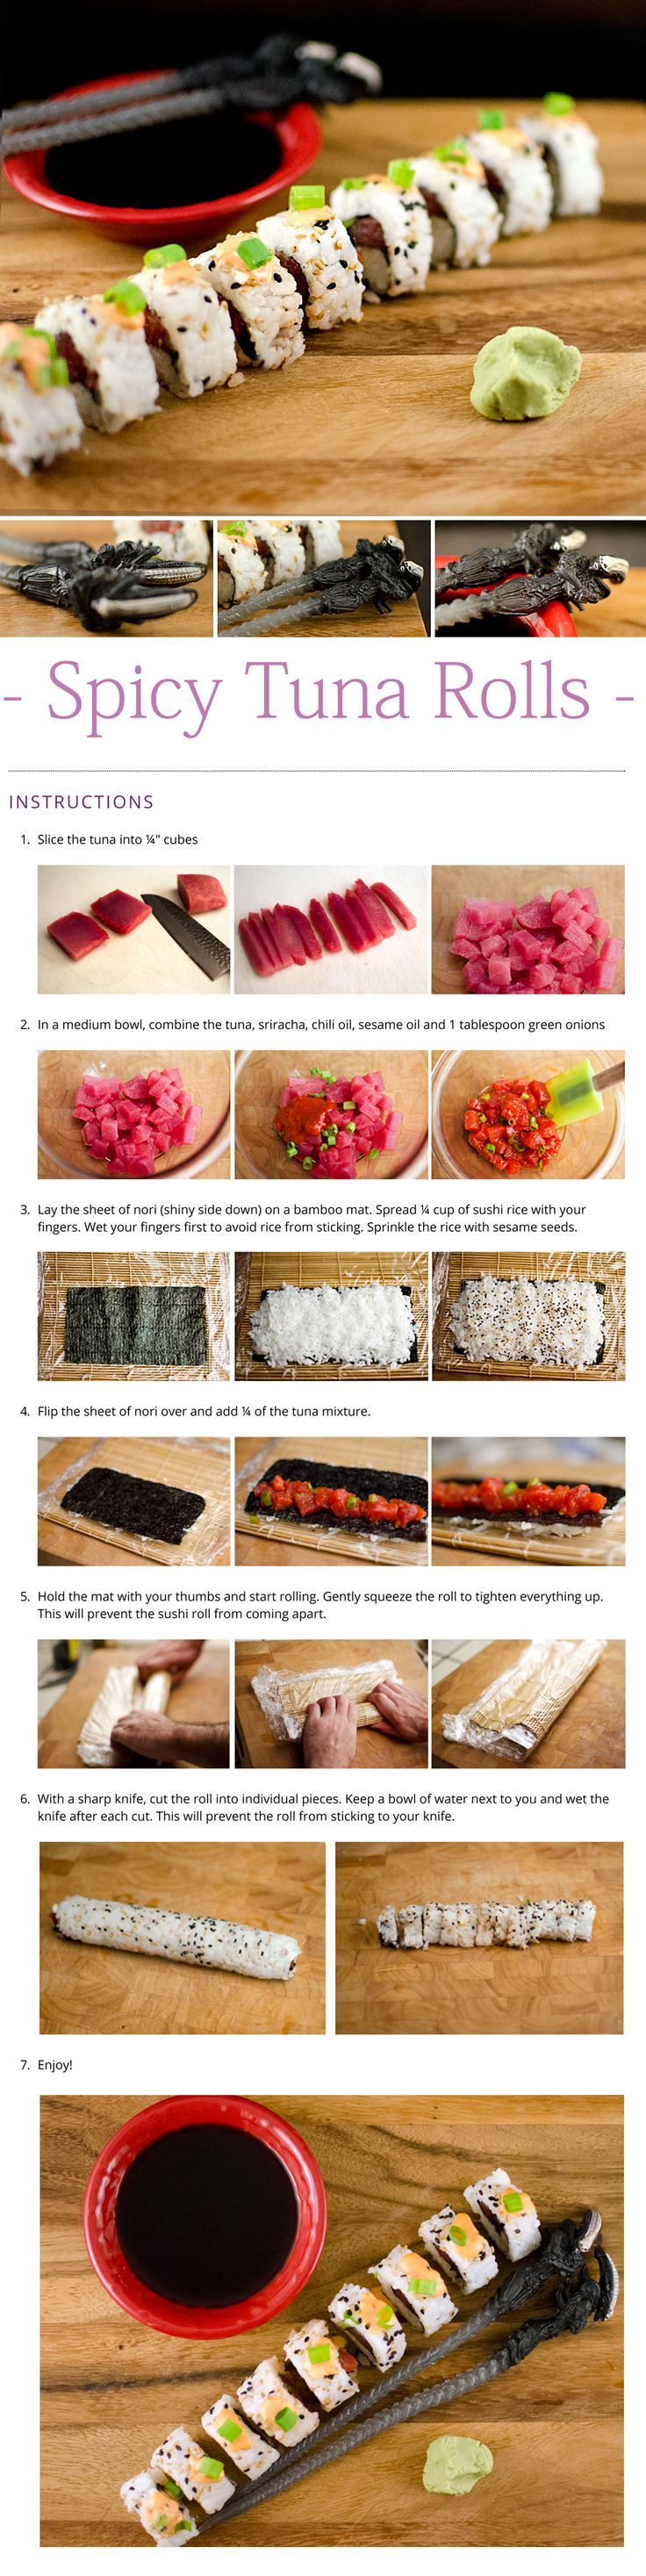 How to make Spicy Tuna Rolls. #HealthyEating #CleanEating #ShermanFinancialGroup